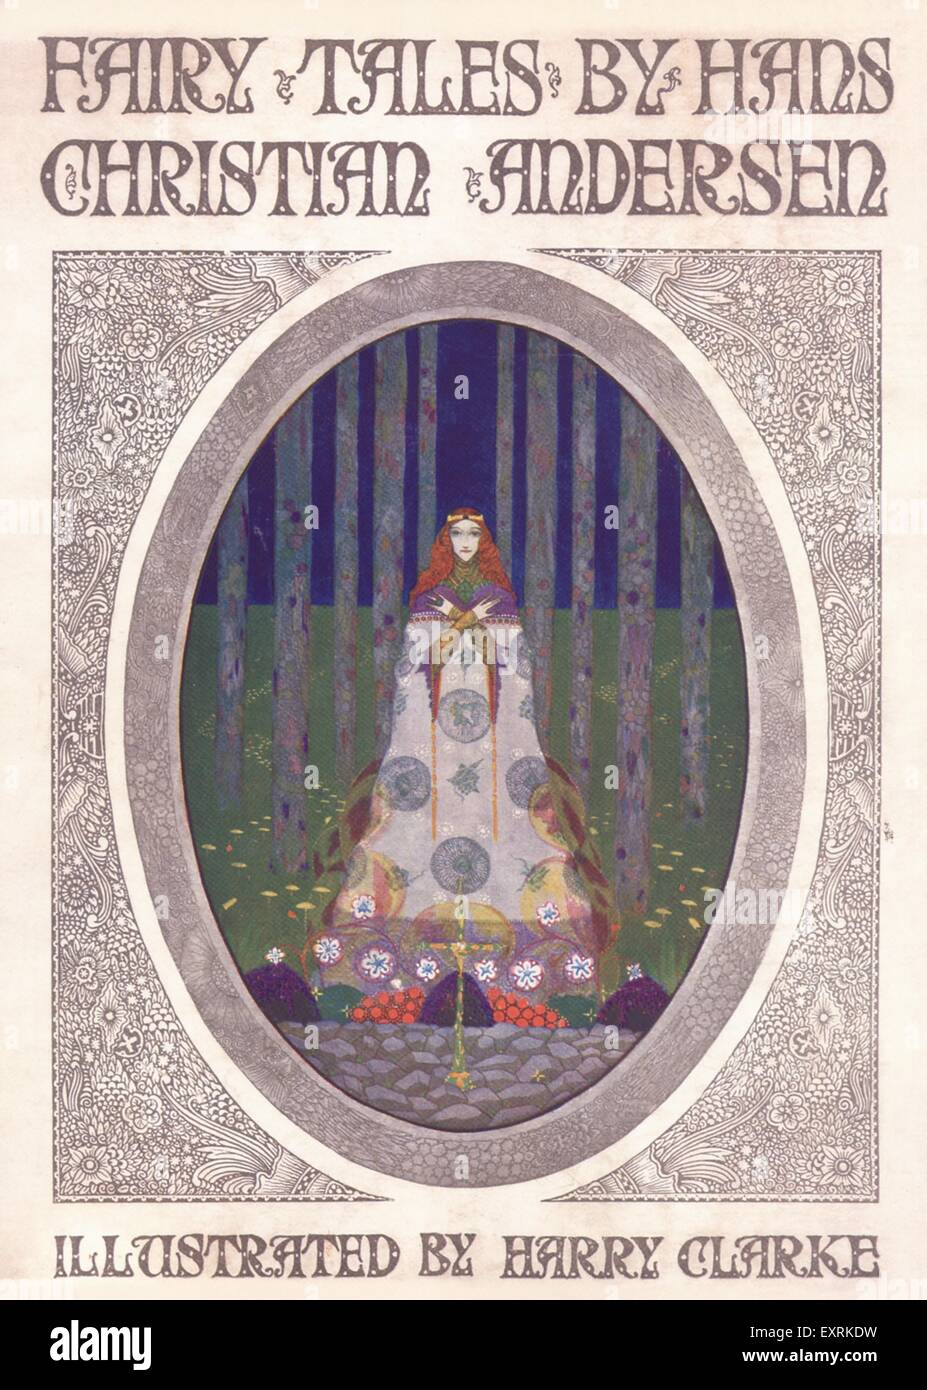 1920s UK Fairy Tales Book Cover - Stock Image